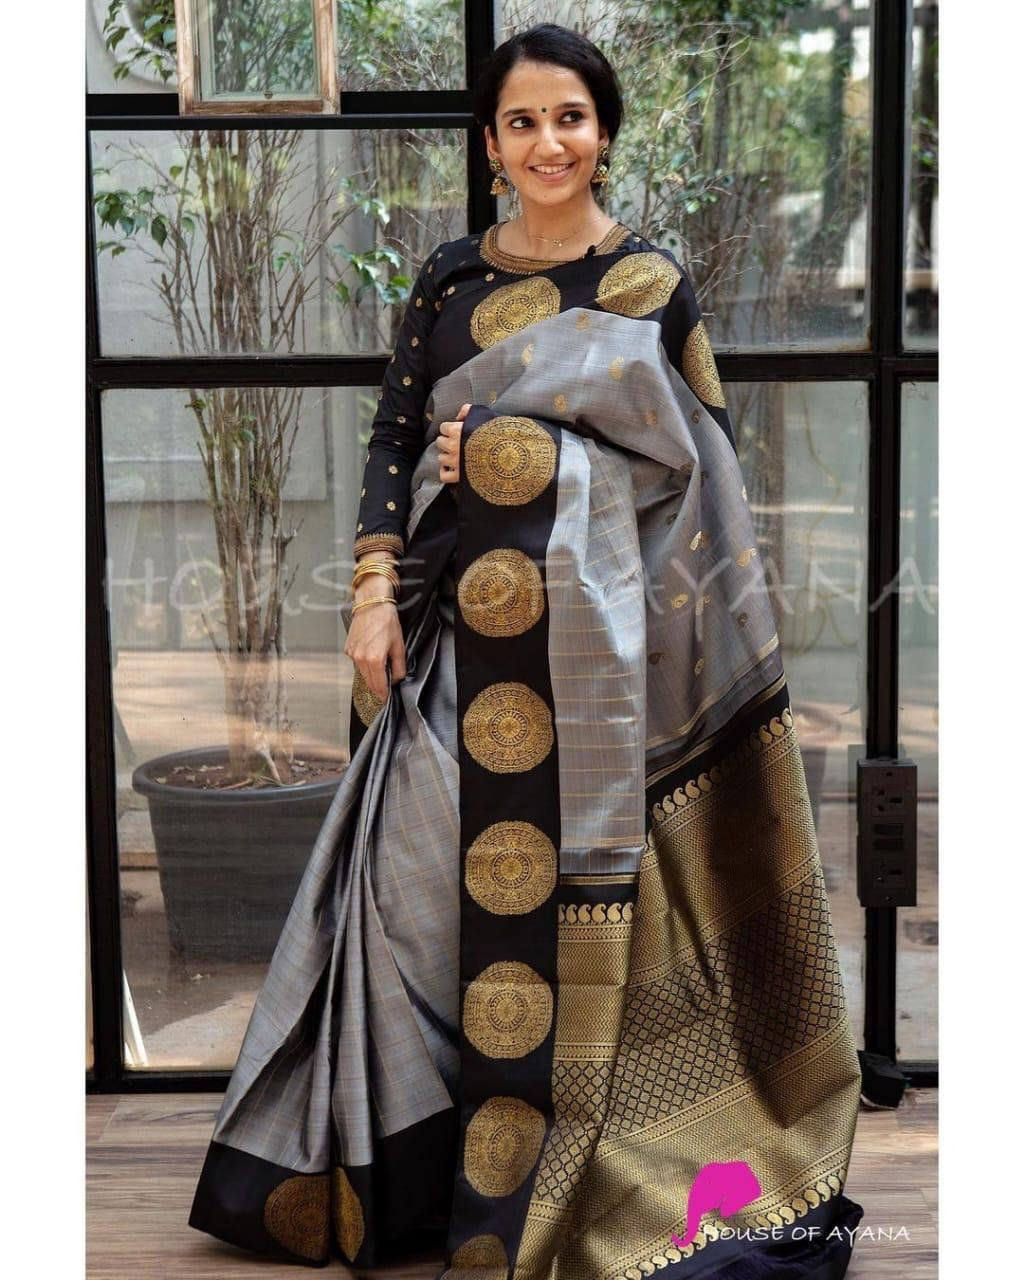 Silk Lichi Fabric Saree With Beautiful Rich Pallu /& Jacquard Work all Over the Saree With Woven Fabric Unstitched Blouse wedding gift saree